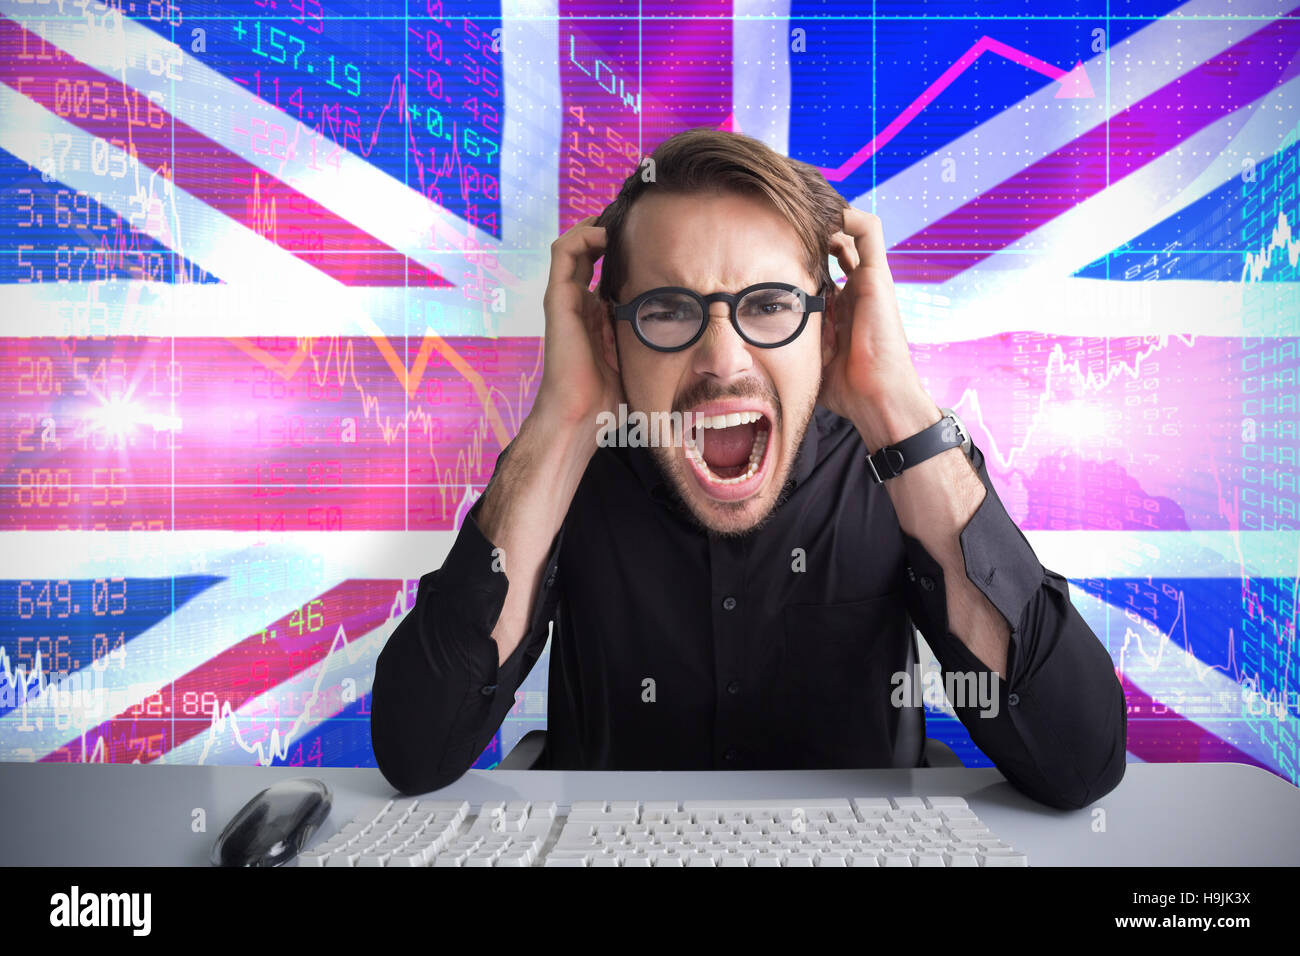 Composite image of businessman yelling with his hands on face - Stock Image